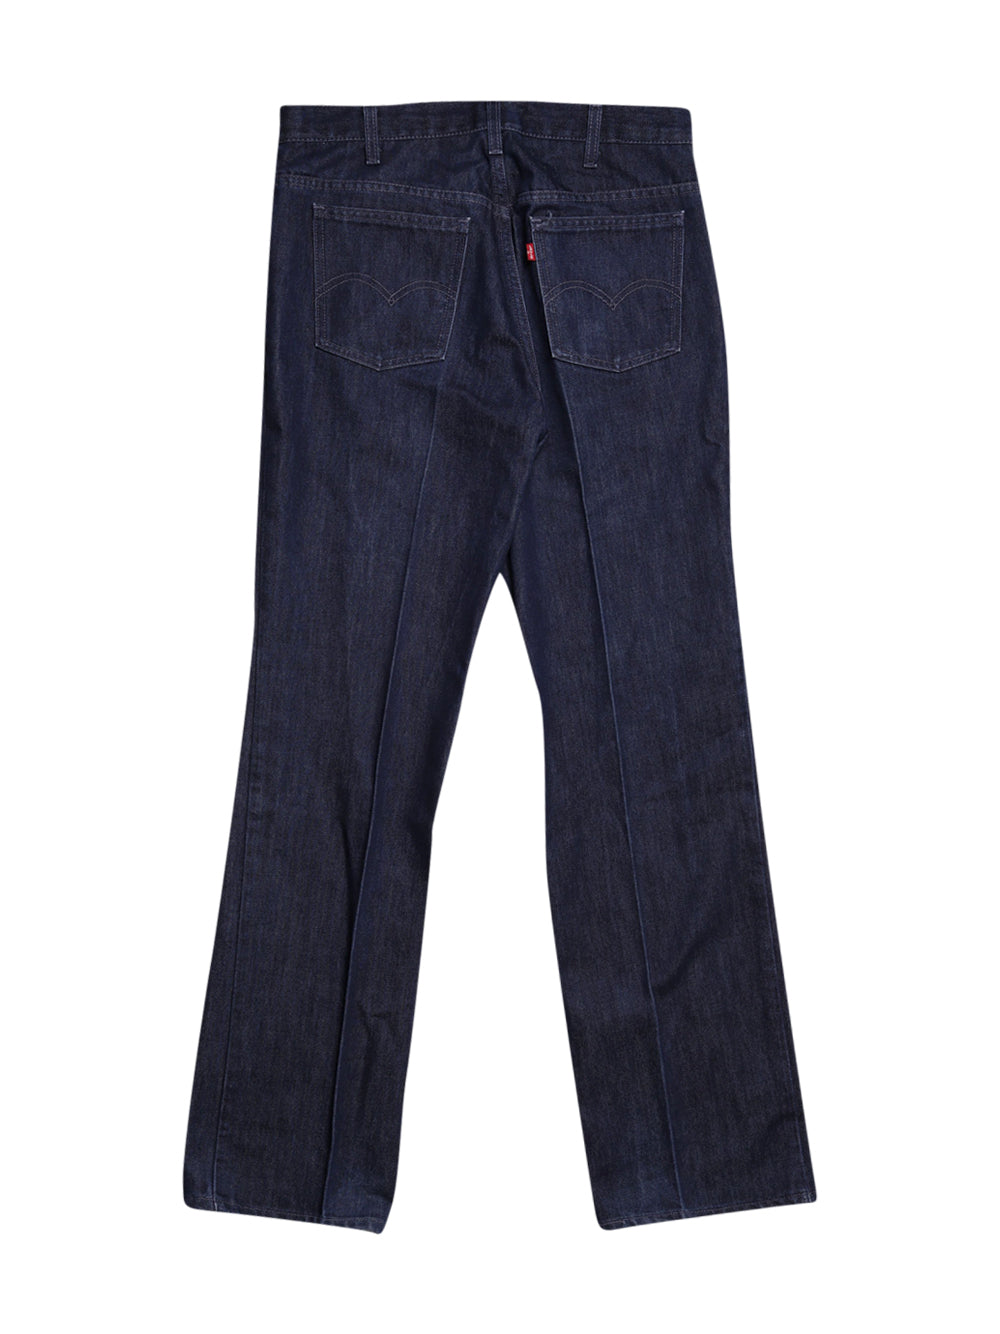 Back photo of Preloved Levi's Blue Woman's trousers - size 8/S